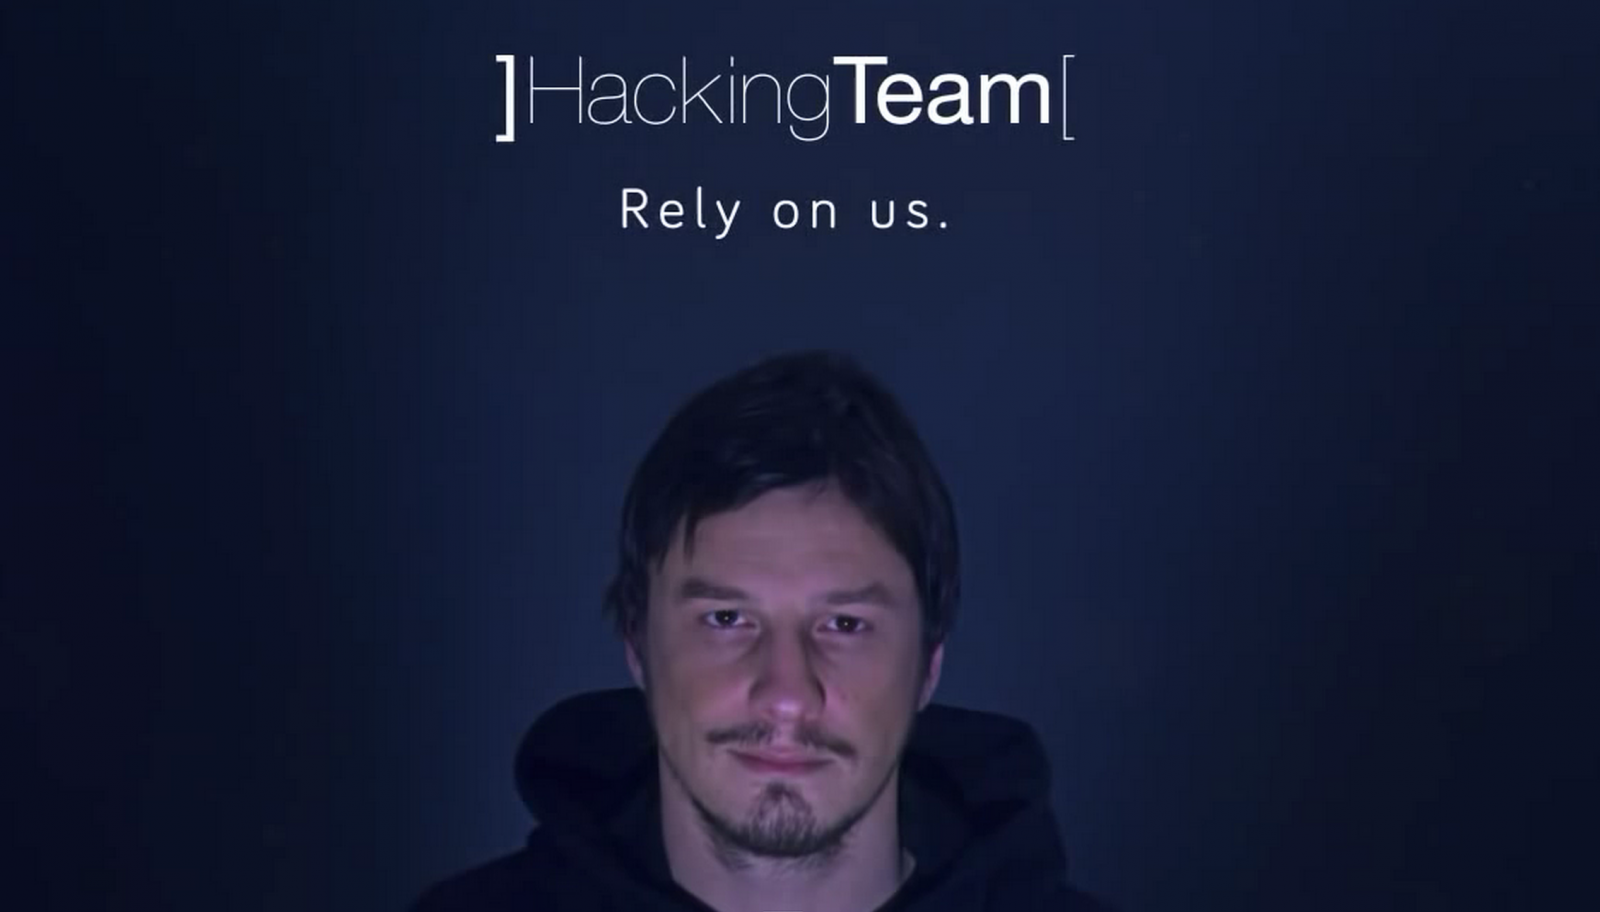 Hacking Team malware in Exploit Kits